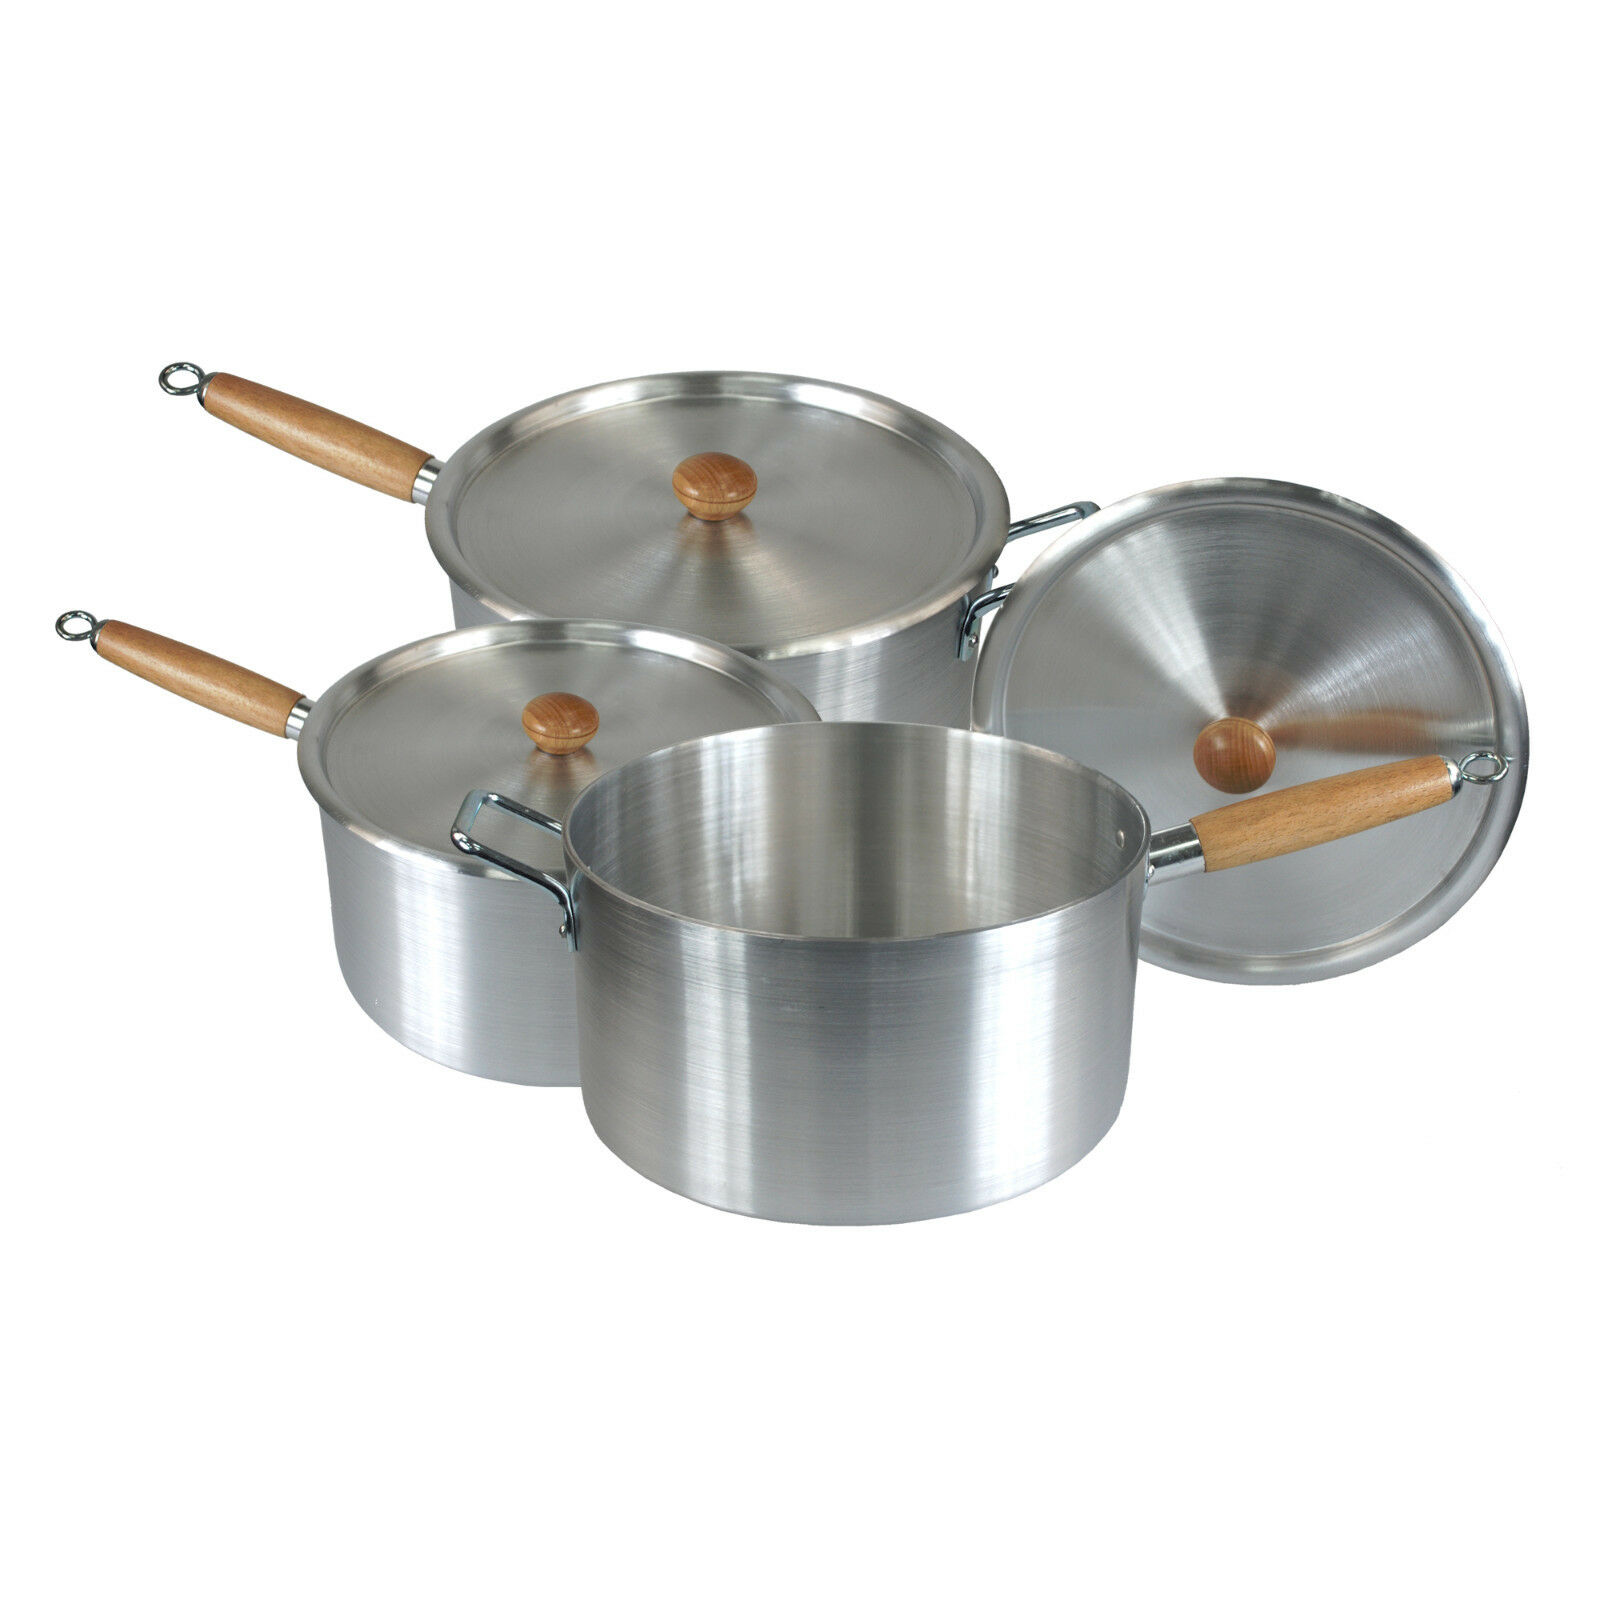 Wooden Handle Aluminium kitchen cooking pan Saucepan pot 3 pc Value Cookware